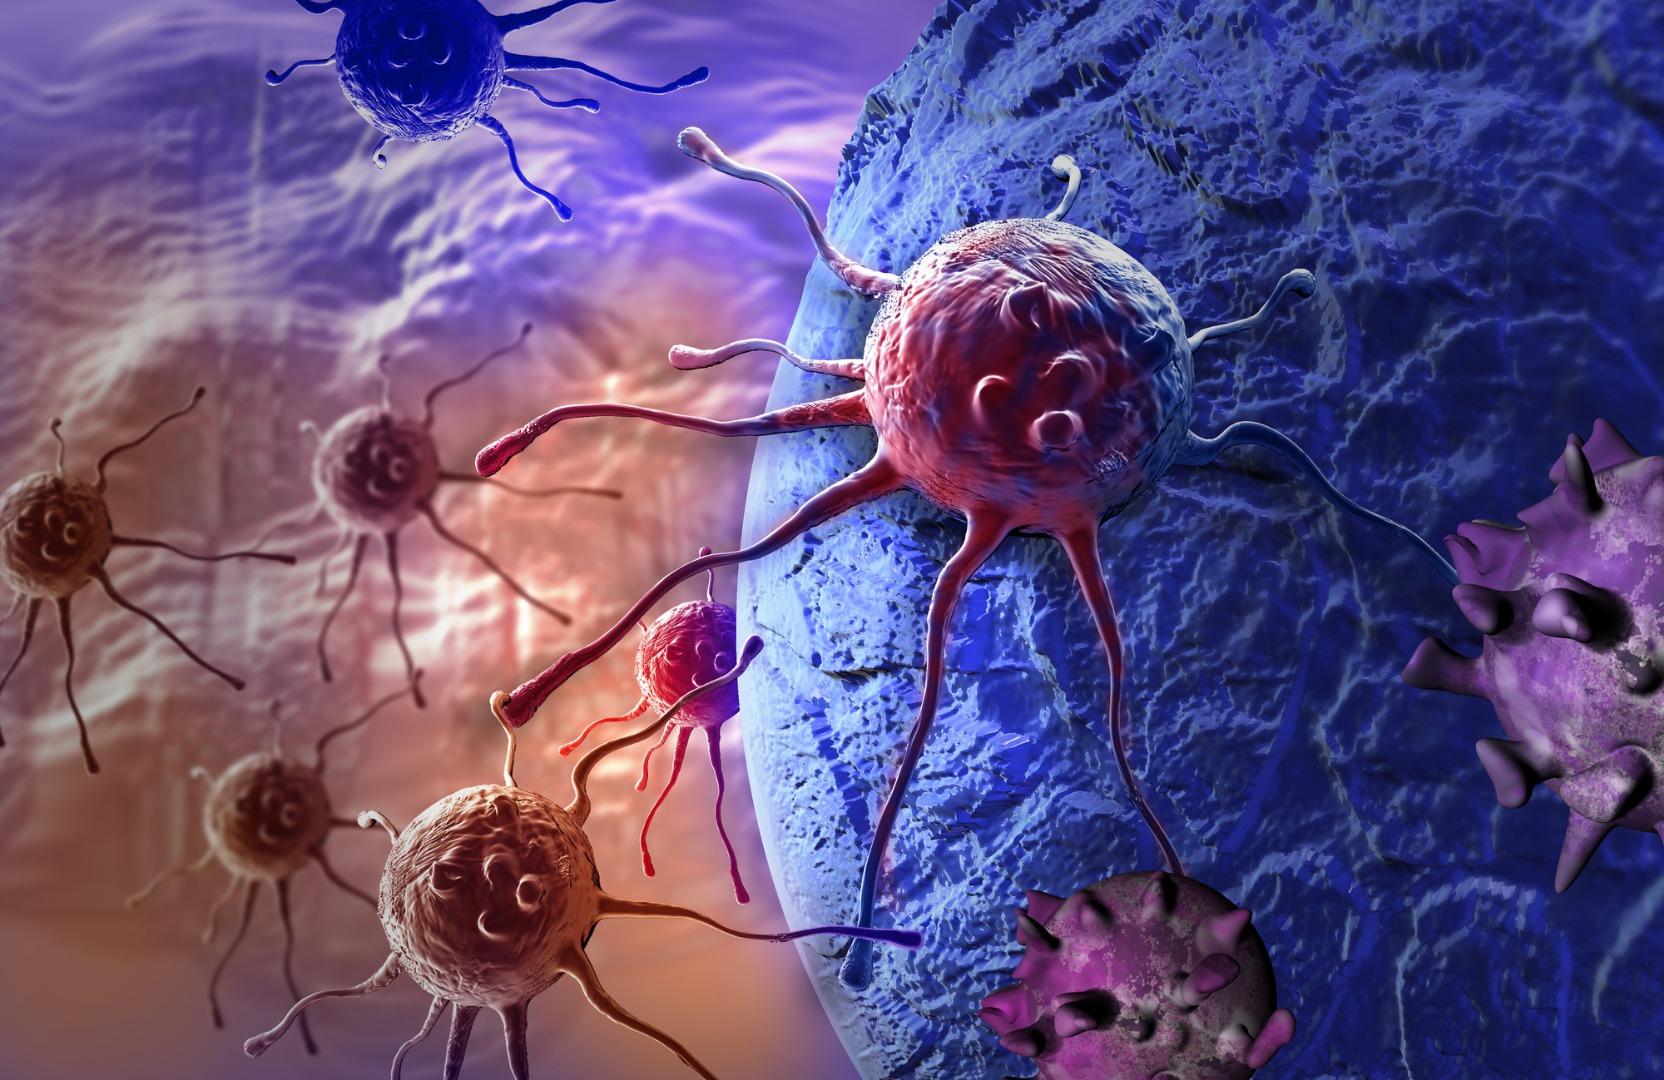 Breakthrough discovery of signal cancers use to hide from immune system